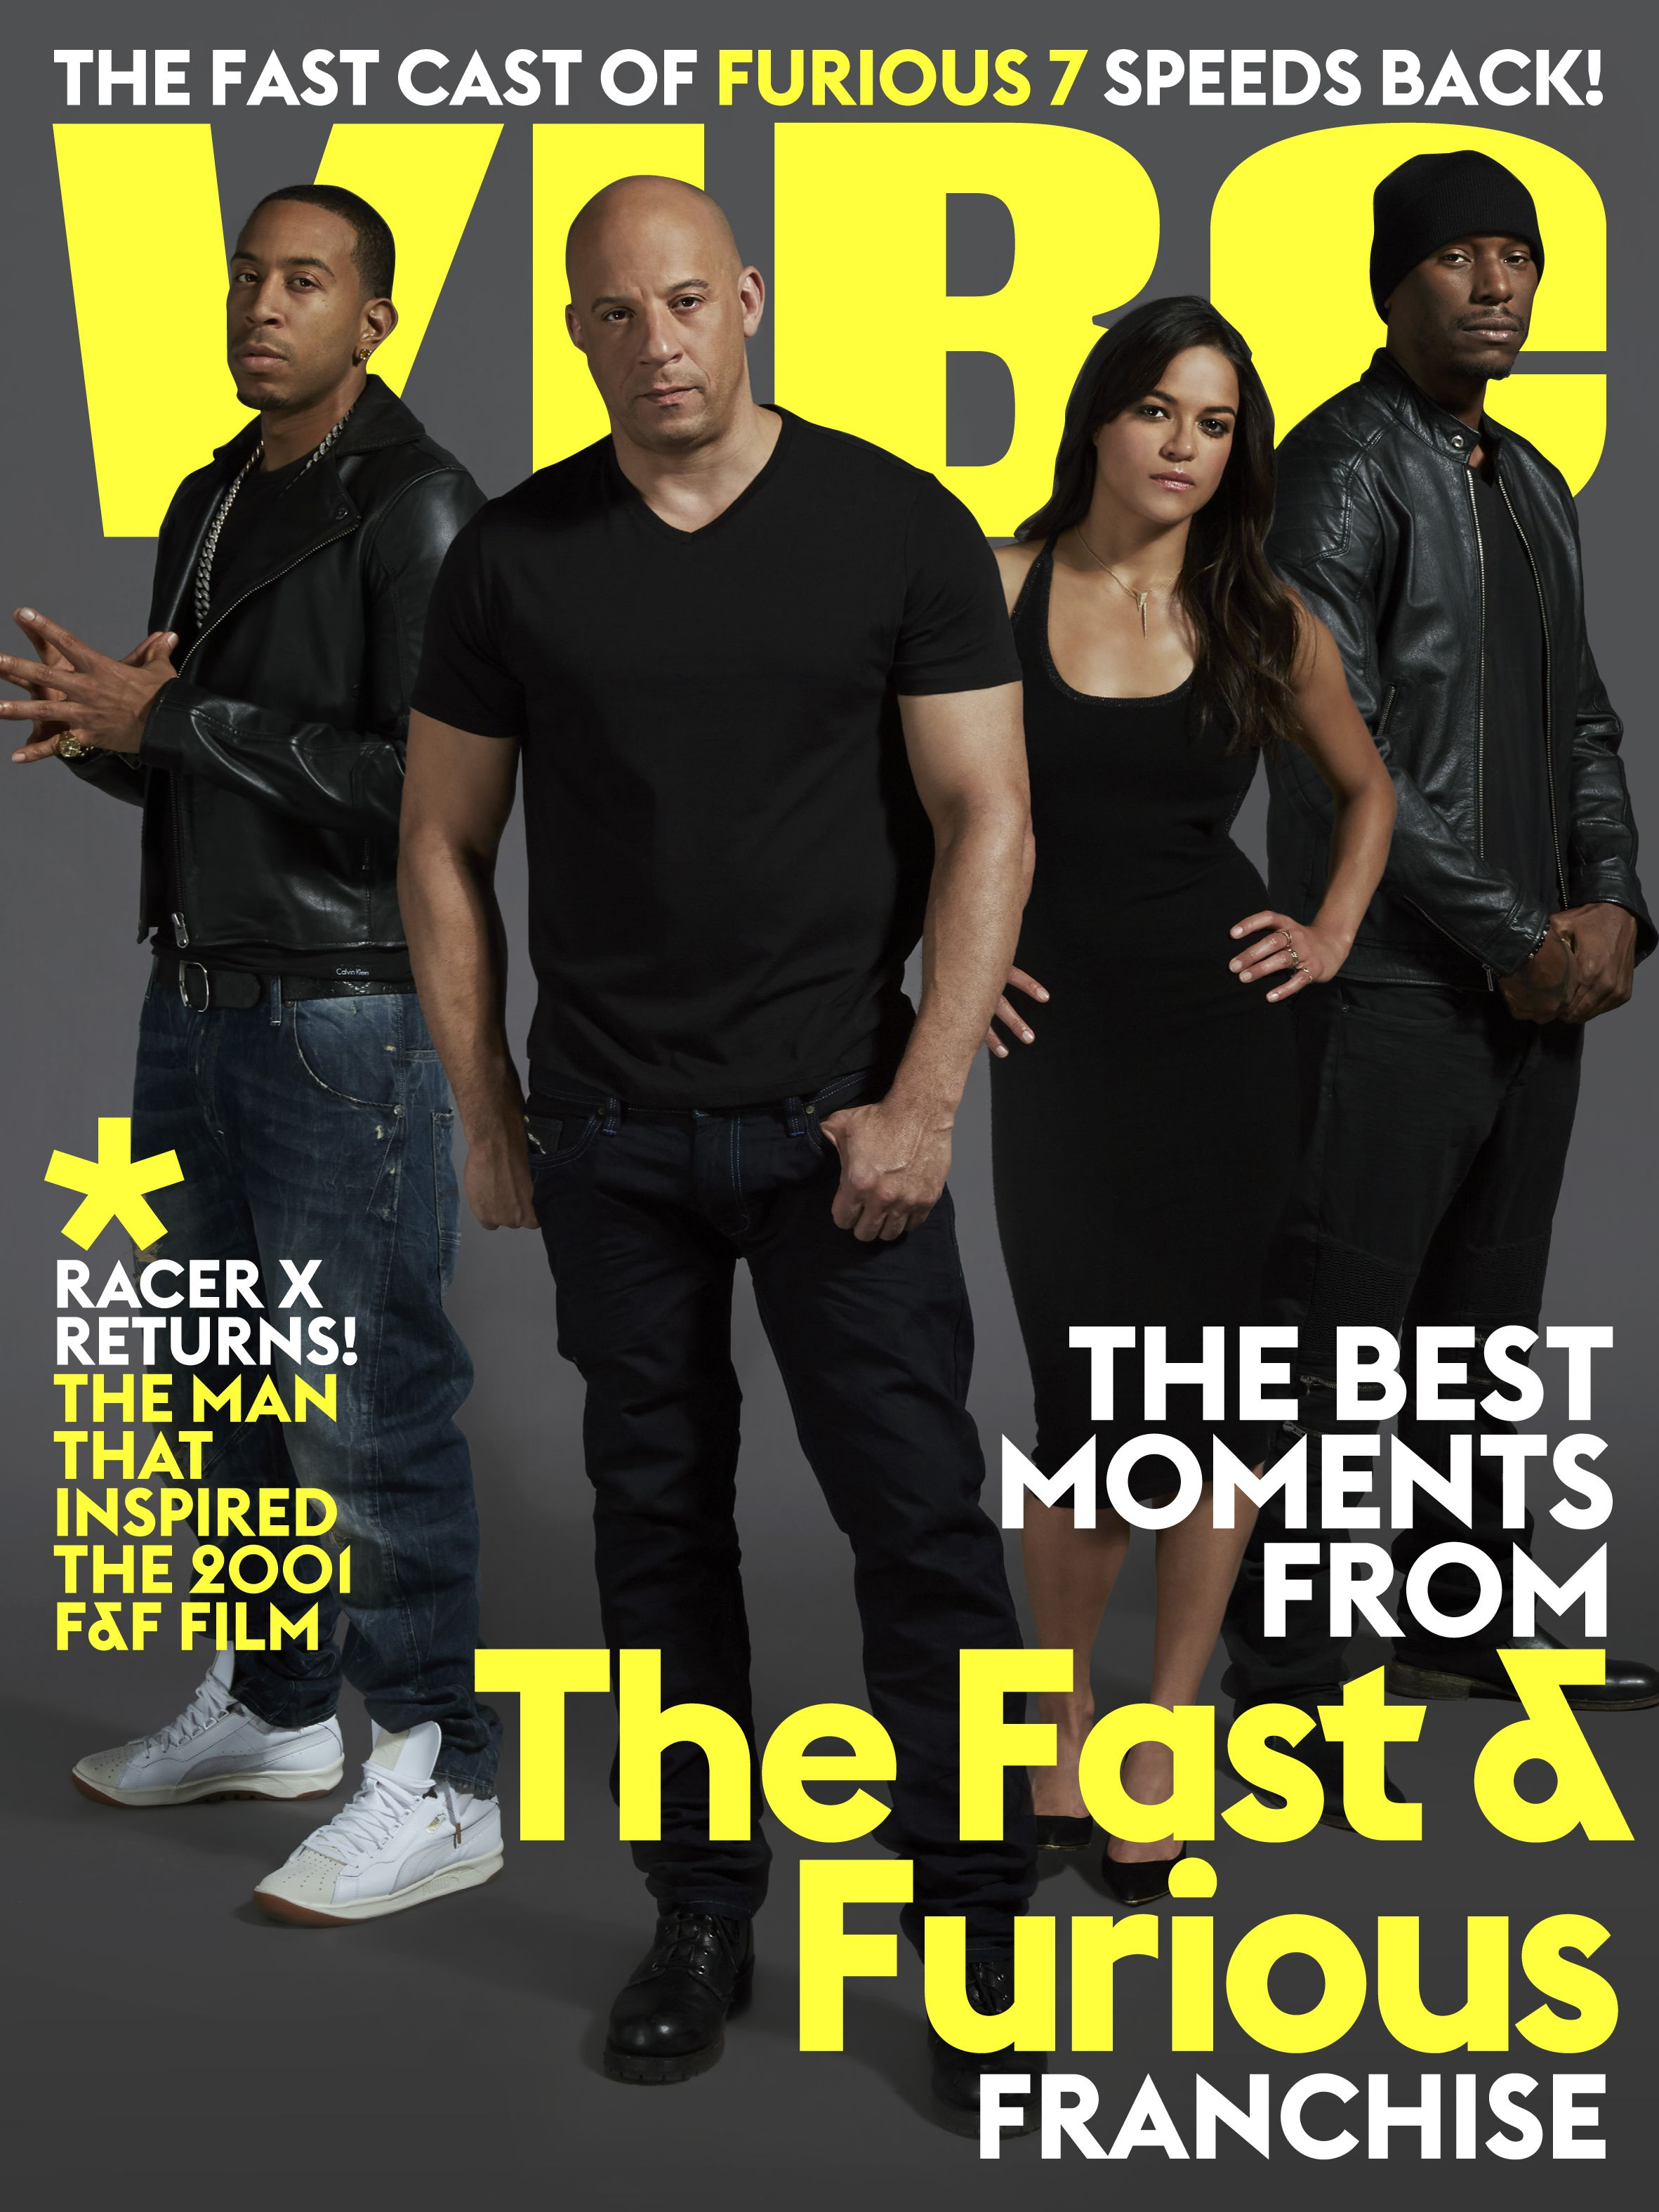 Vibe joins ludacris vin diesel michelle rodriguez and tyrese gibson for a digital cover